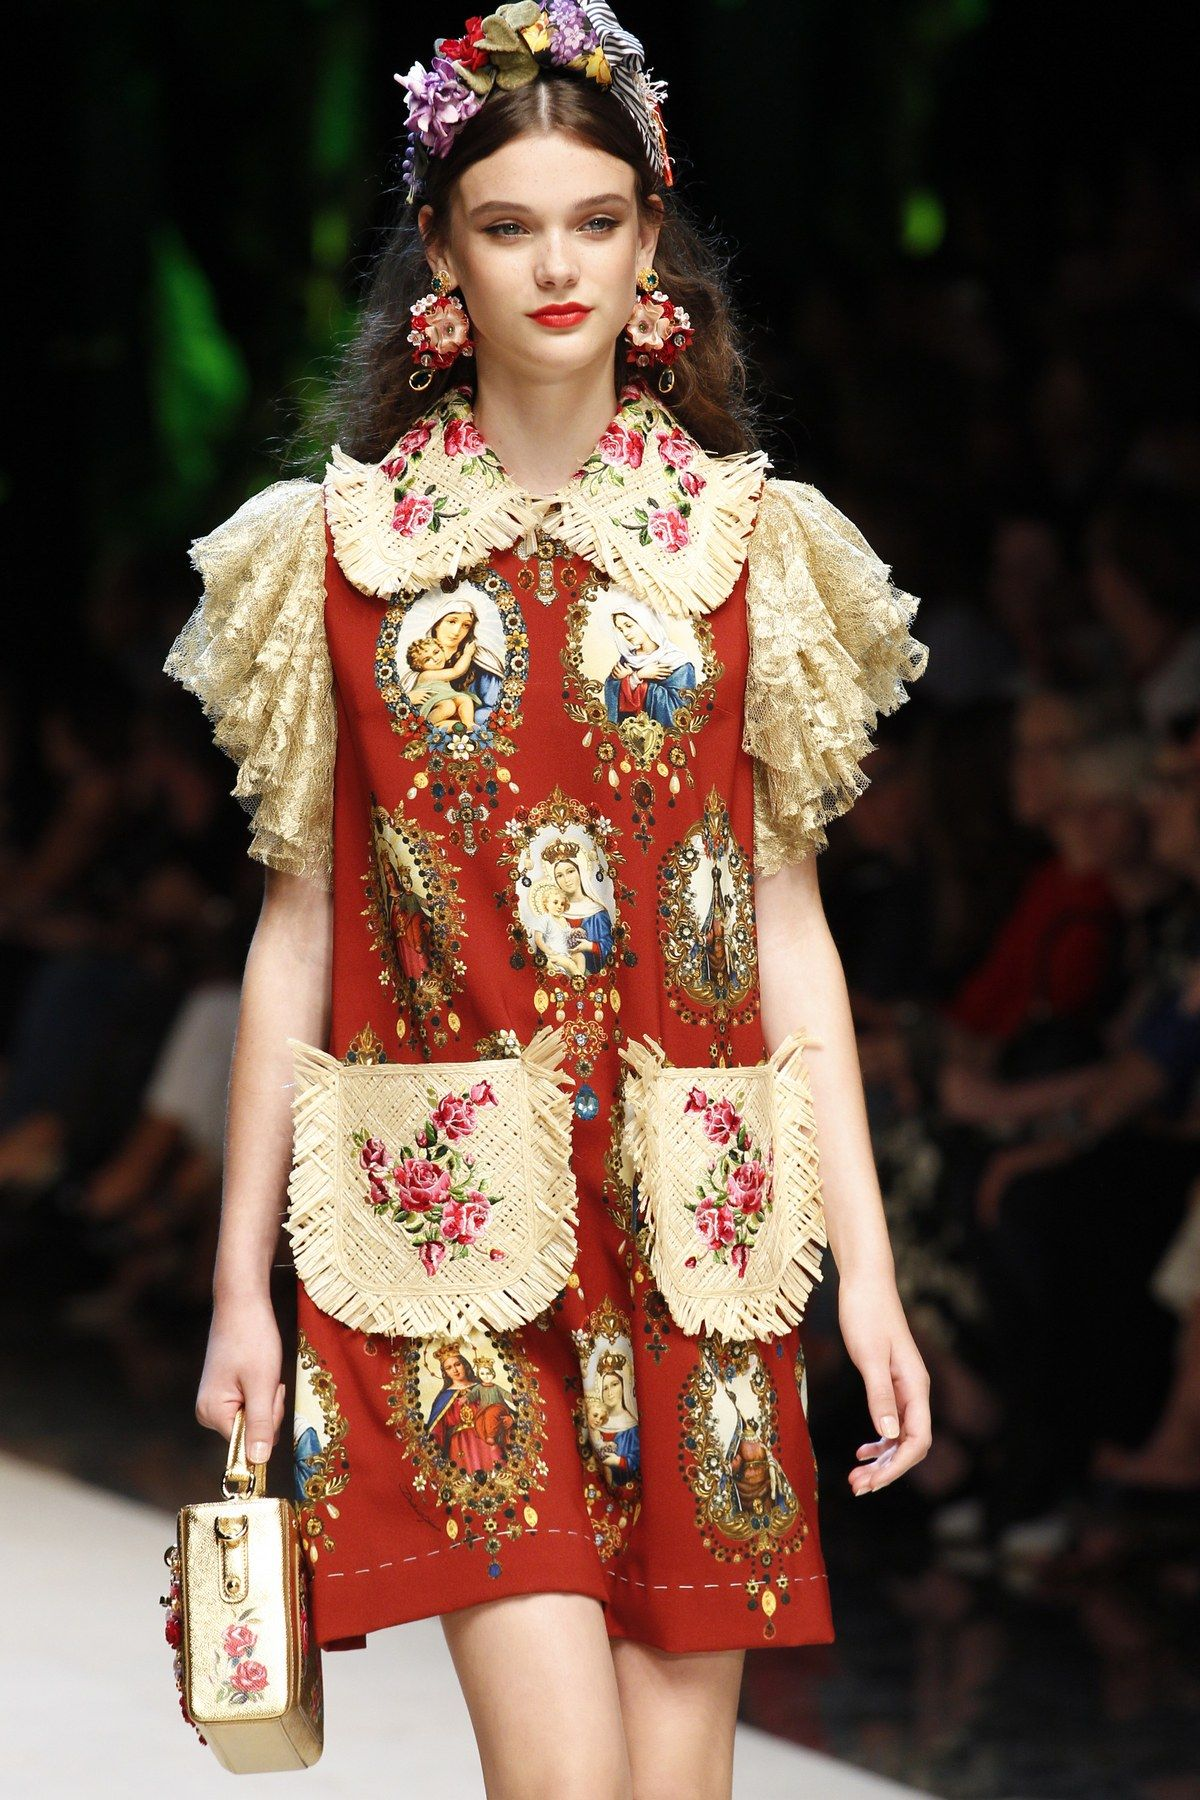 de9ae5317ab Dolce & Gabbana Spring 2017 Ready-to-Wear Fashion Show in 2019 ...